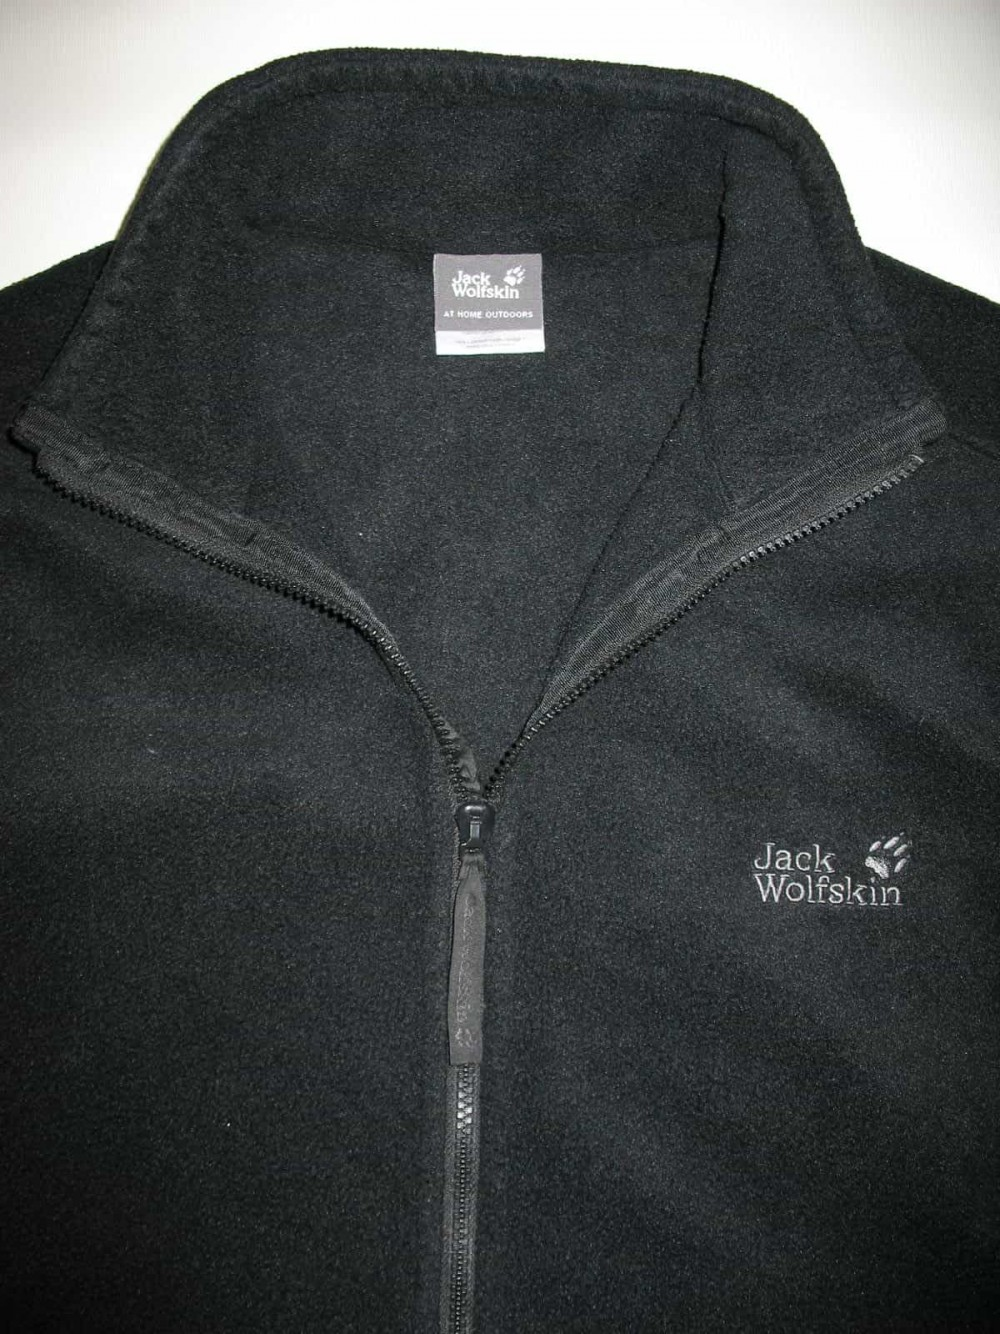 Куртка JACK WOLFSKIN nanuk 200 fleece jacket (размер L) - 3